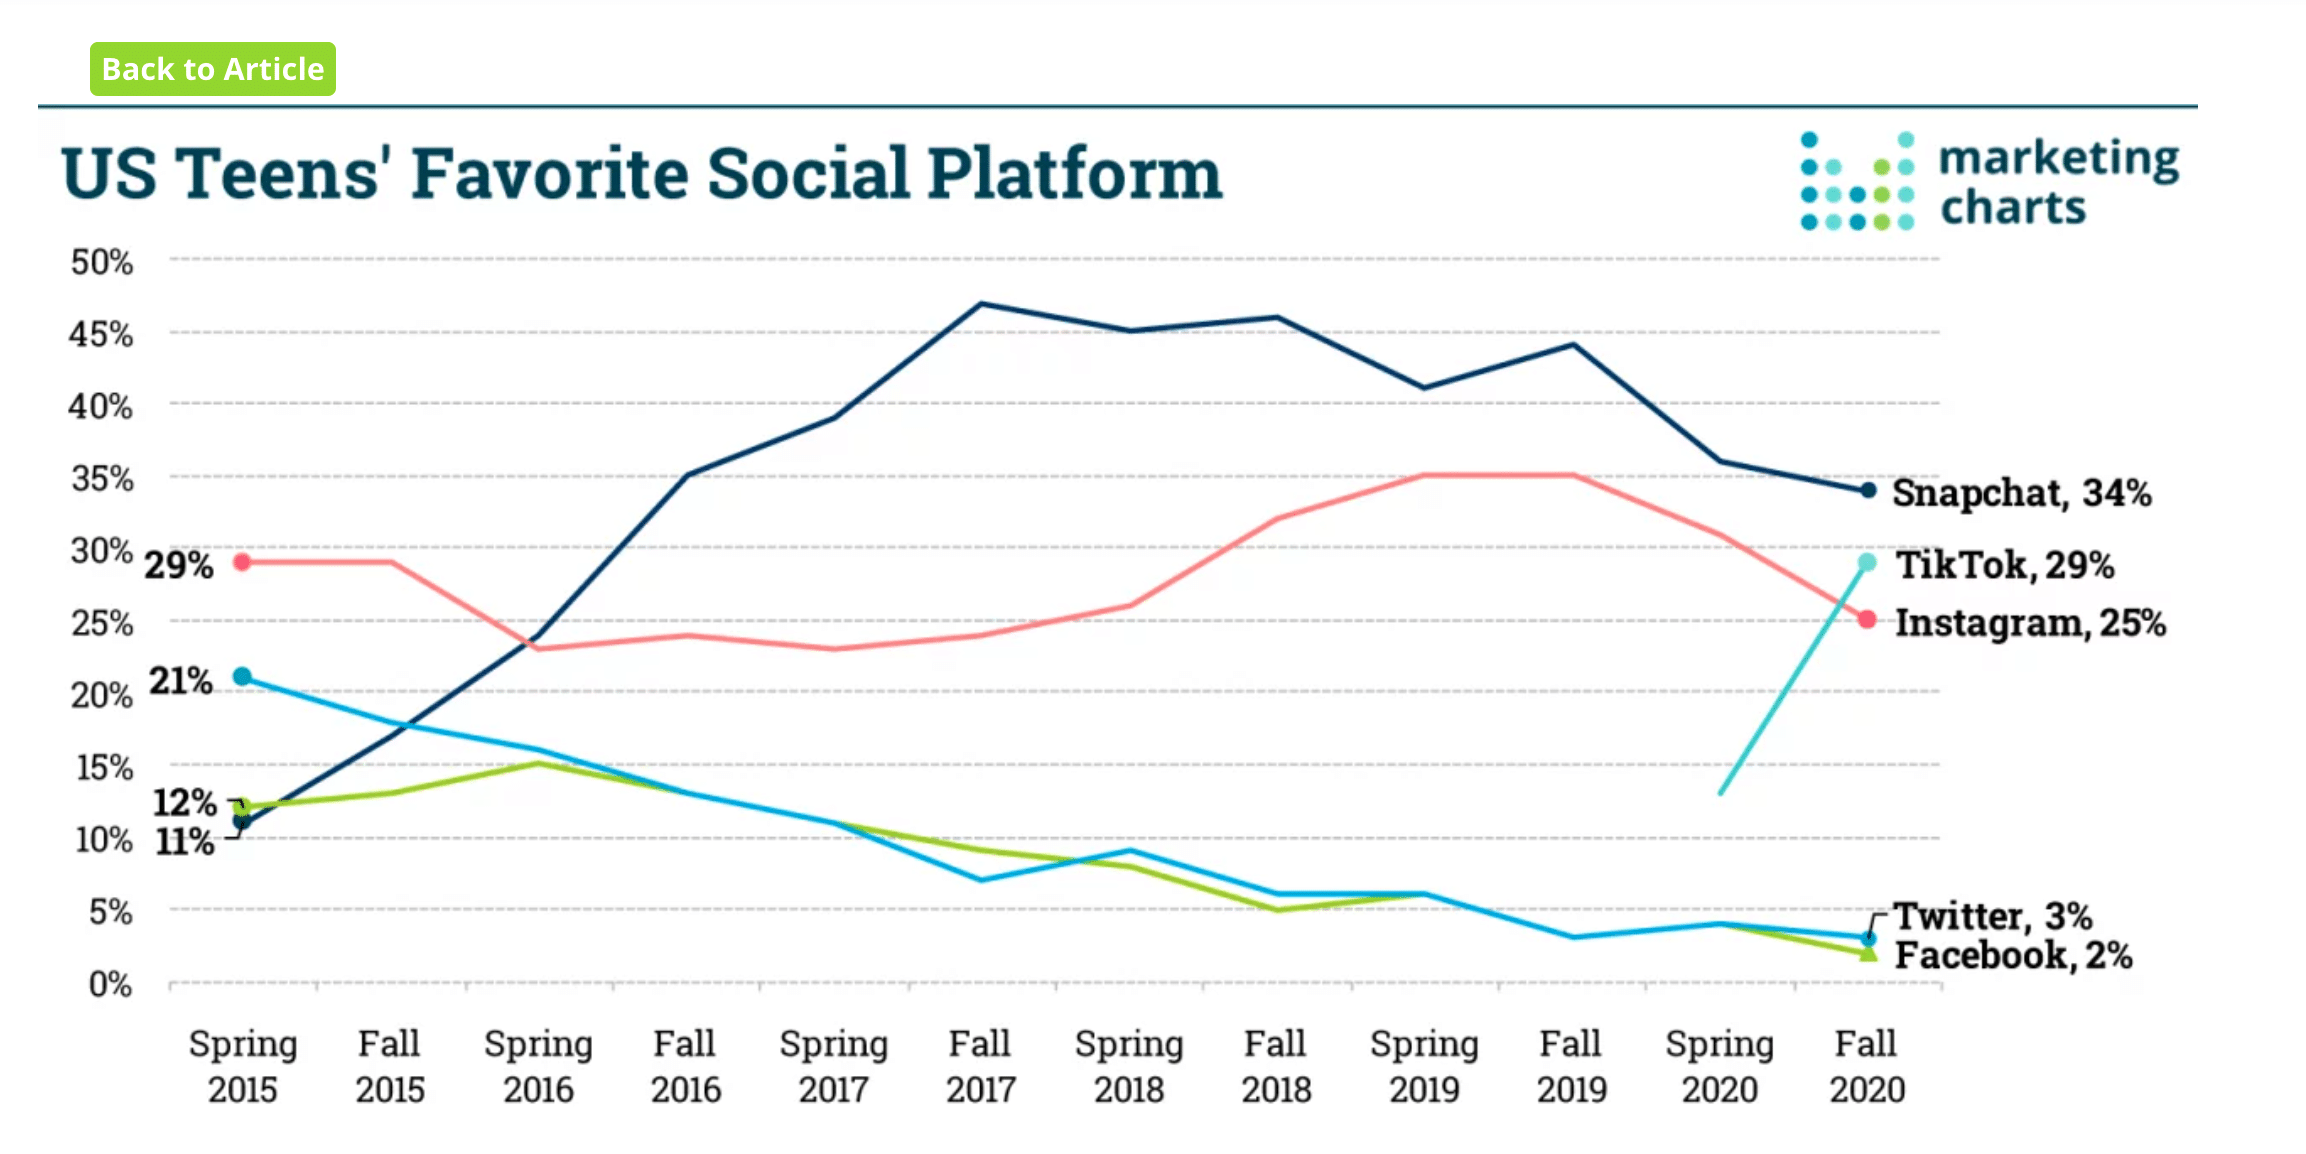 The most popular social platform for US teenagers